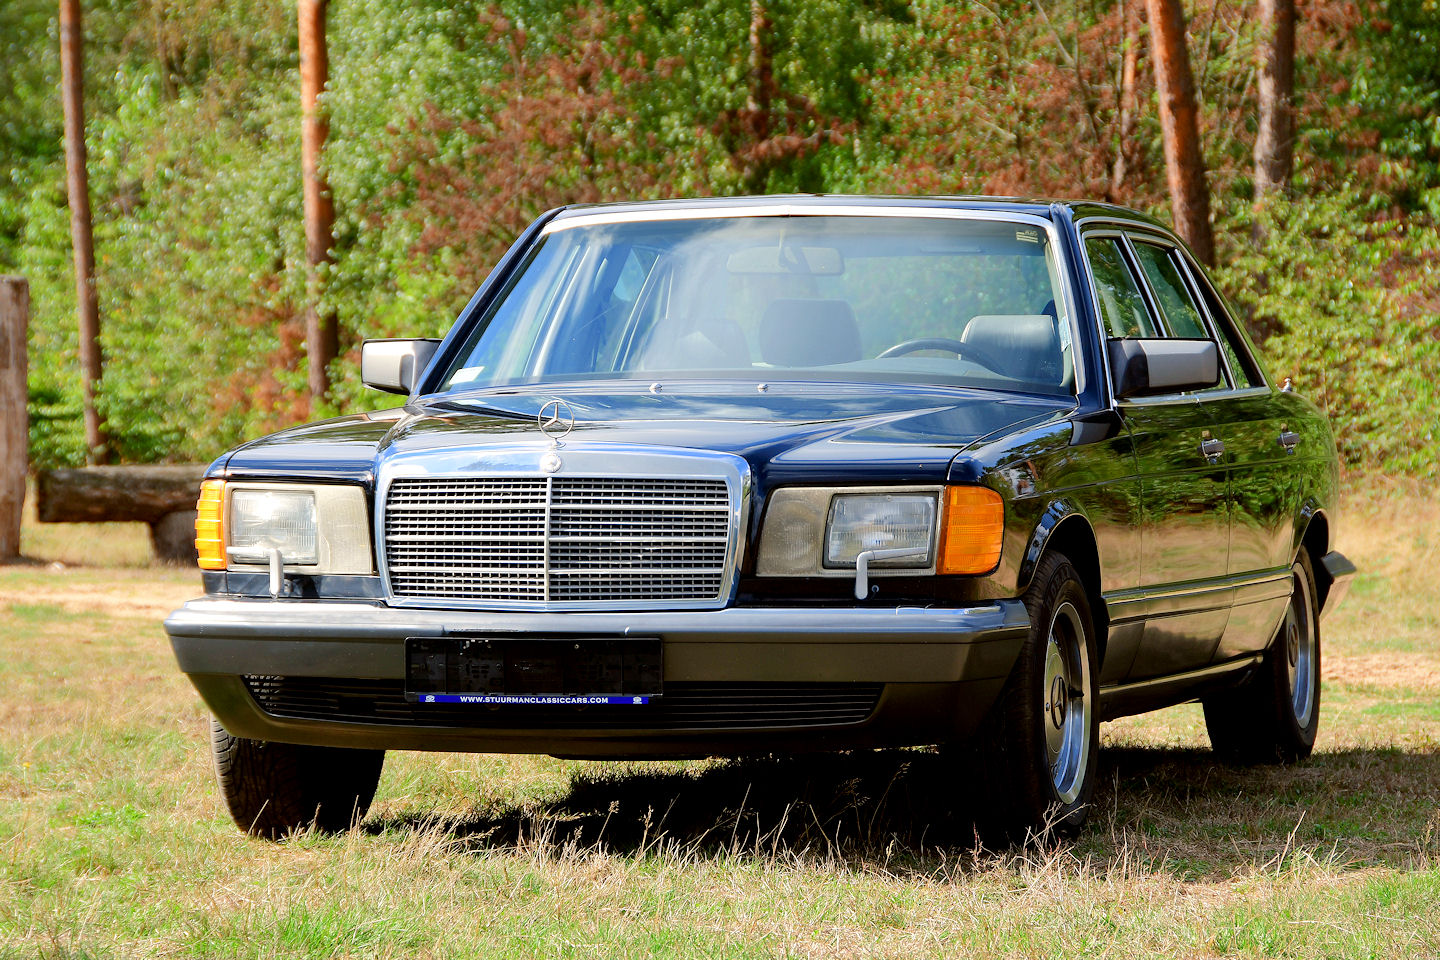 hight resolution of 89 mercedes benz 560sel engine diagram wiring library 89 mercedes benz 560sel engine diagram